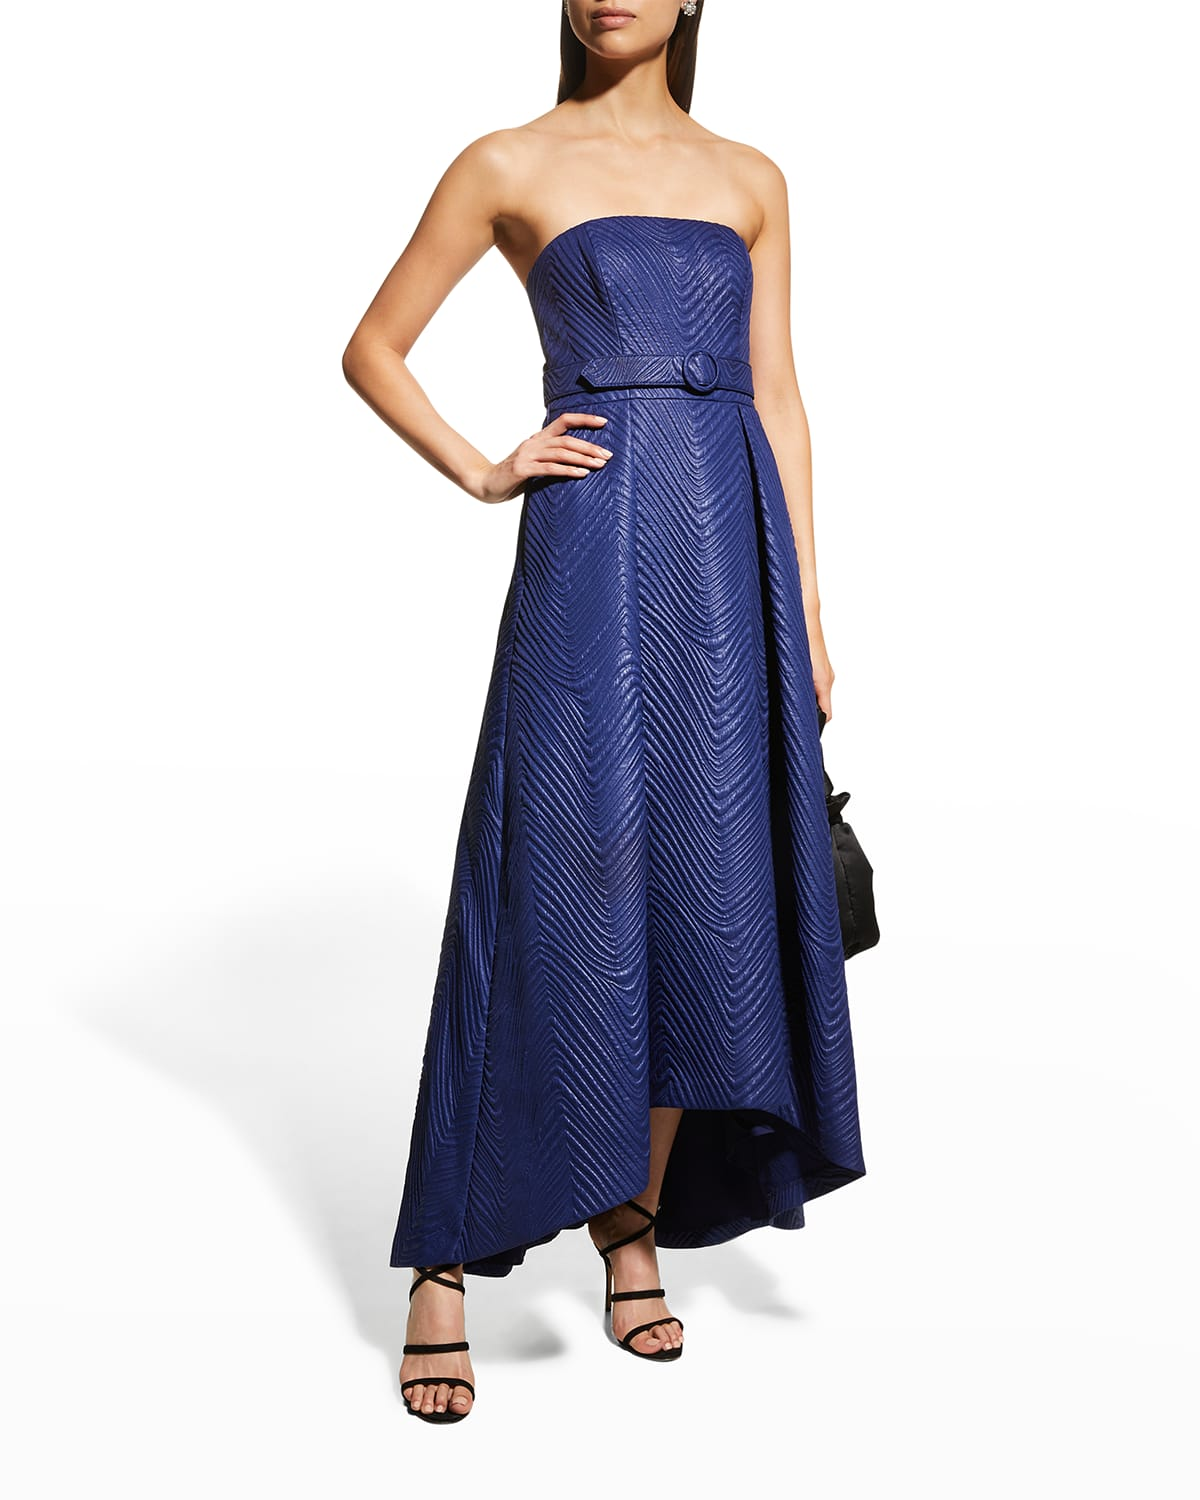 Bella Quilted Jacquard Strapless Gown